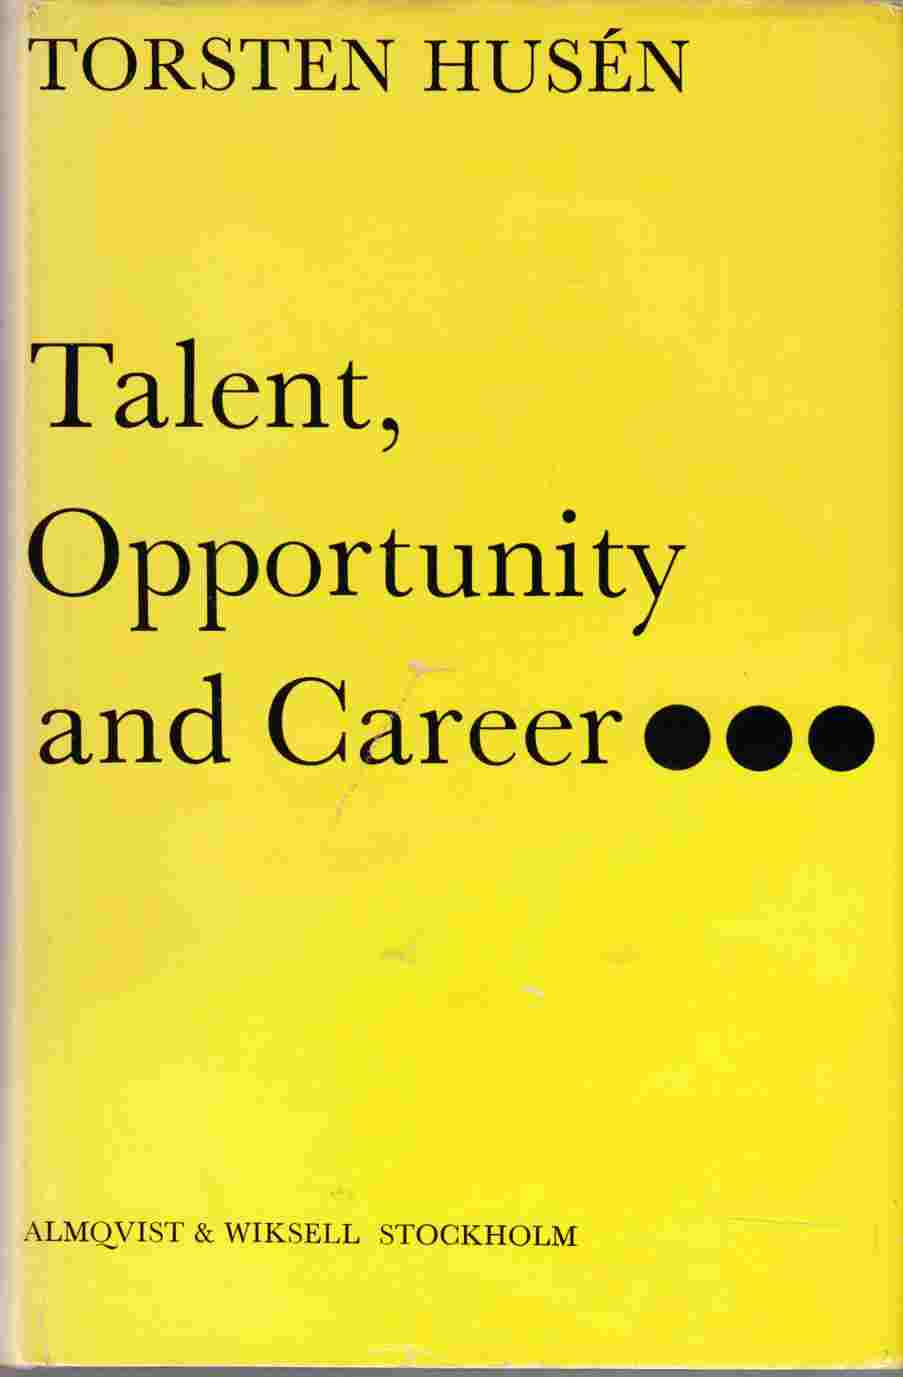 Image for Talent, Opportunity and Career A Twenty-Six Year Follow-Up of 1500 Individuals